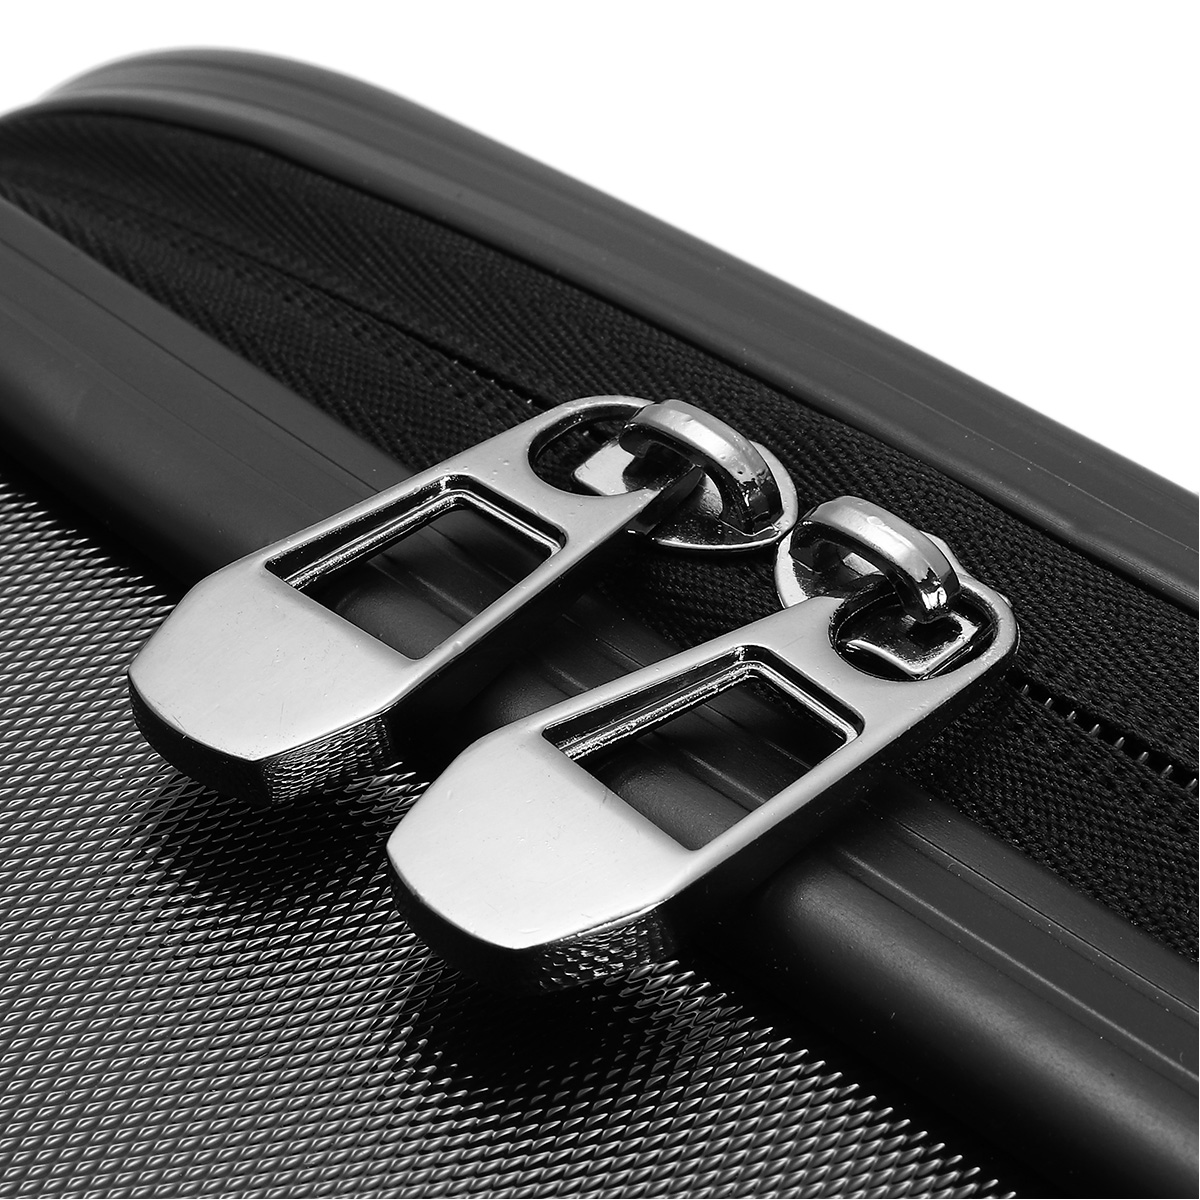 Waterproof Hard Shell Backpack Case Carrying Bag For Hubsan X4 H501S Quadcopter